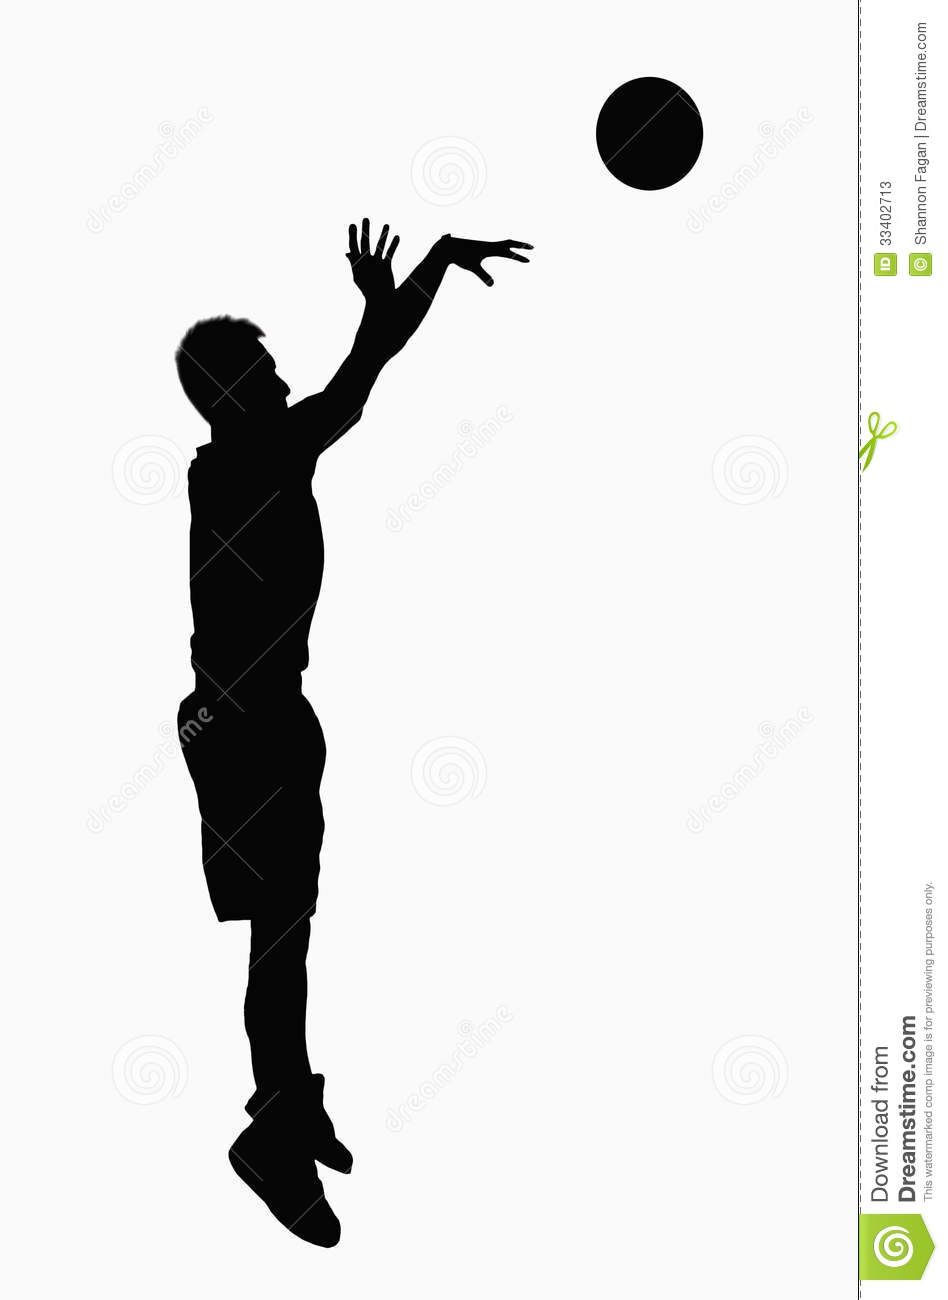 how to draw someone shooting a basketball awesome girl shooting basketball playing basketball someone basketball a how shooting draw to